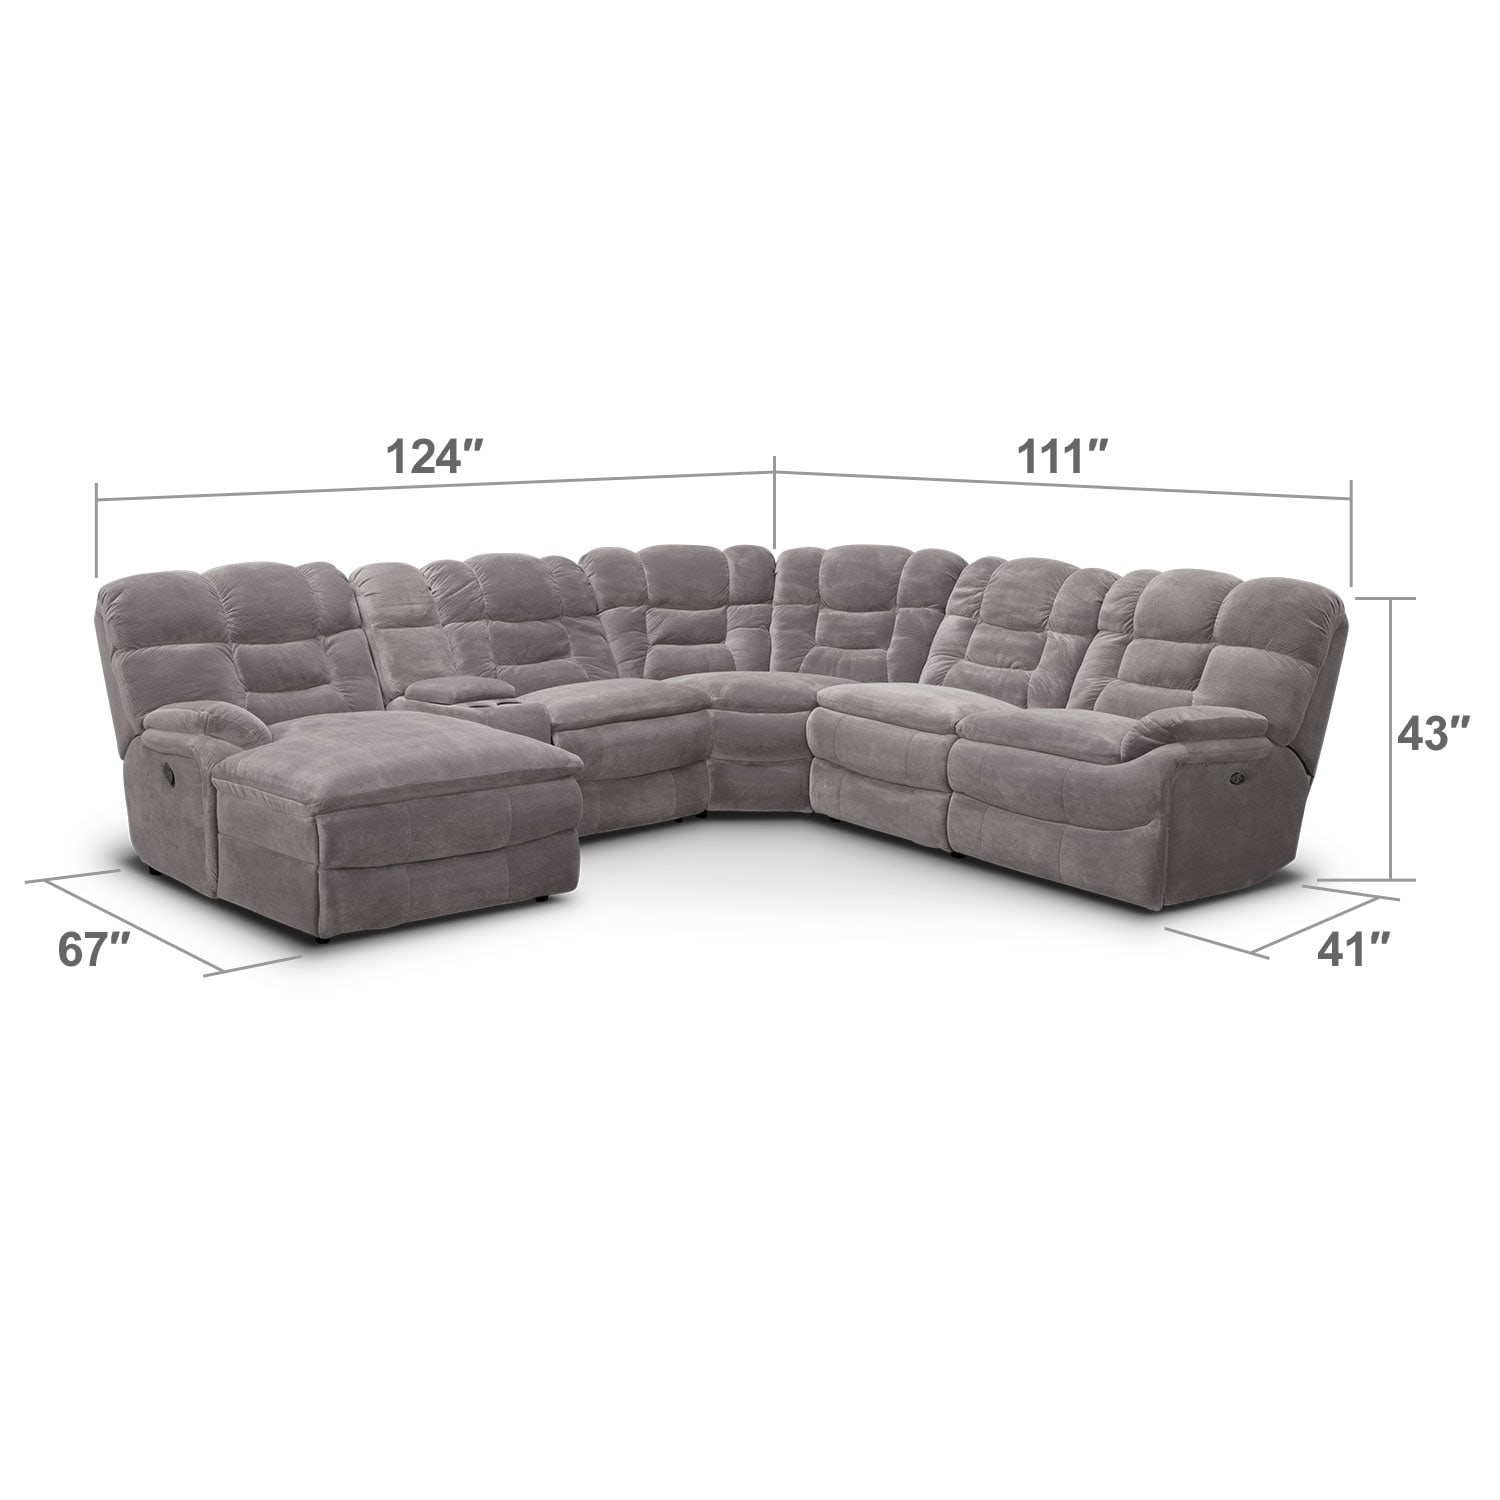 justin ii fabric reclining sectional sofa tufted velvet big softie 6 piece power with left